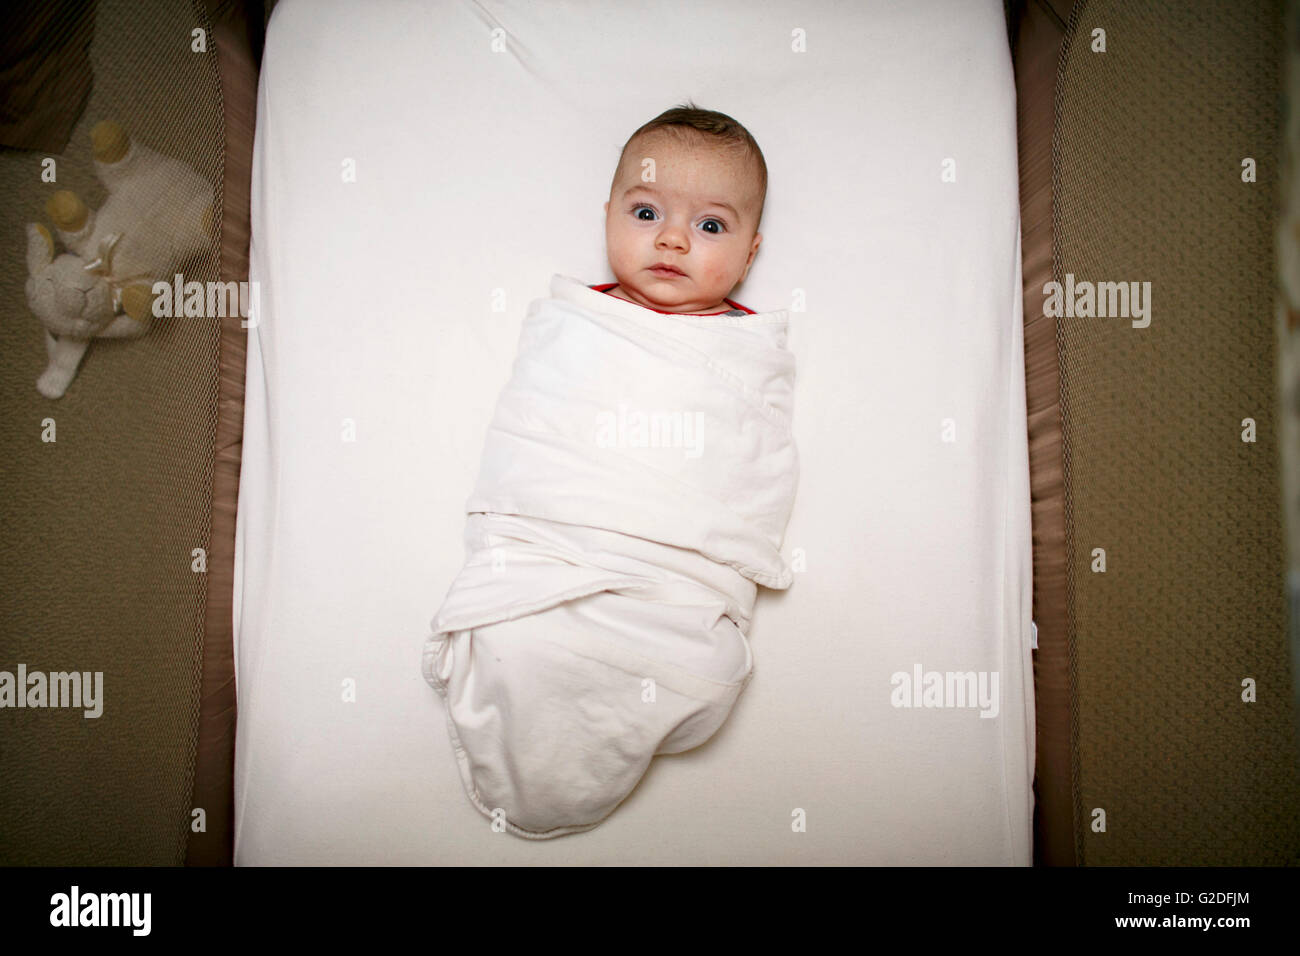 Wide-Eyed Infant Wrapped in Blanket - Stock Image